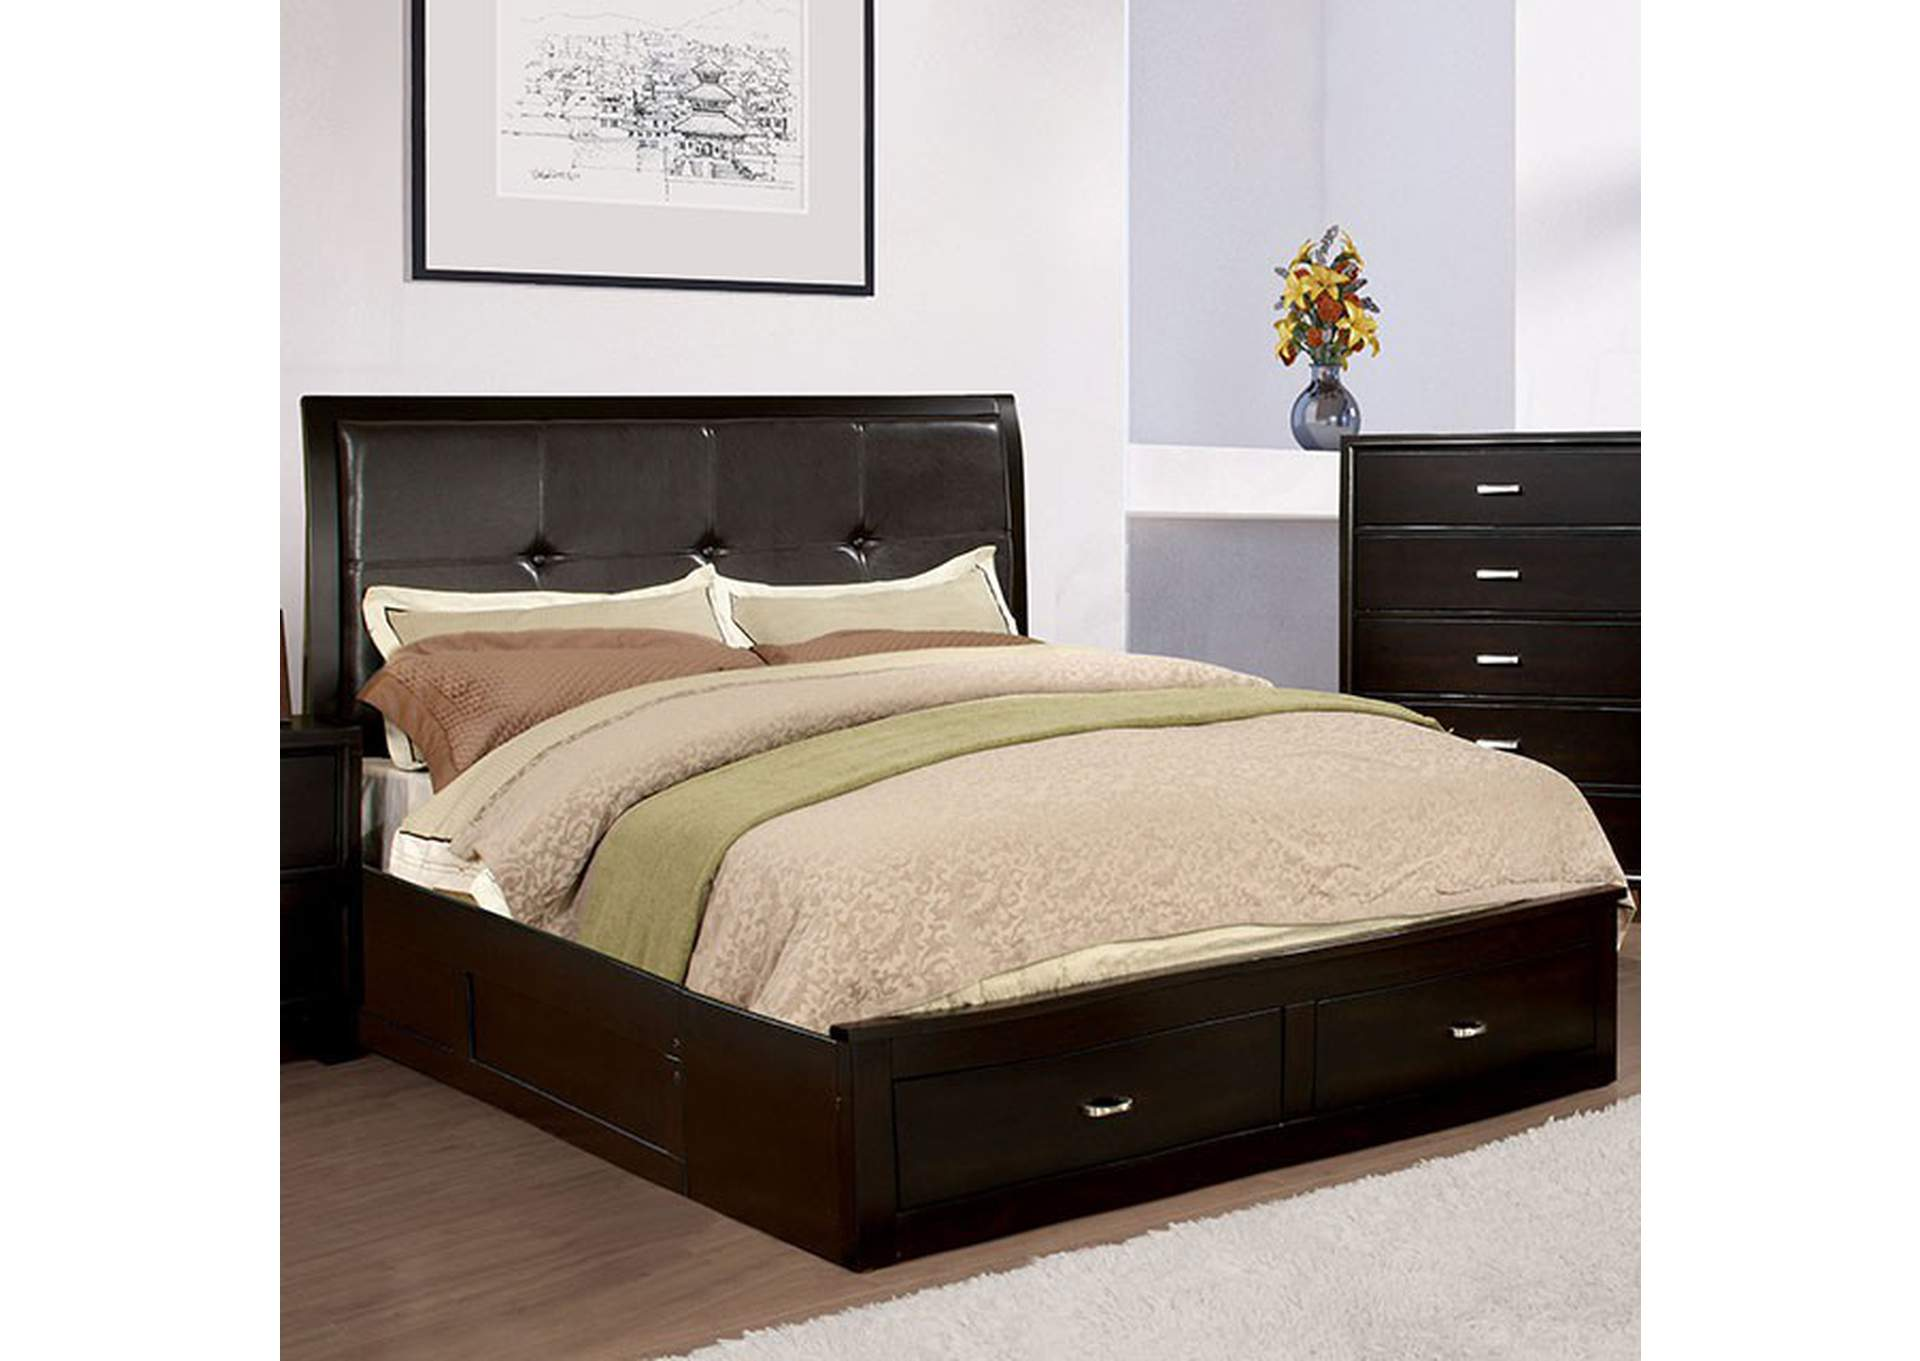 Enrico III Espresso Queen Platform Storage Bed,Furniture of America